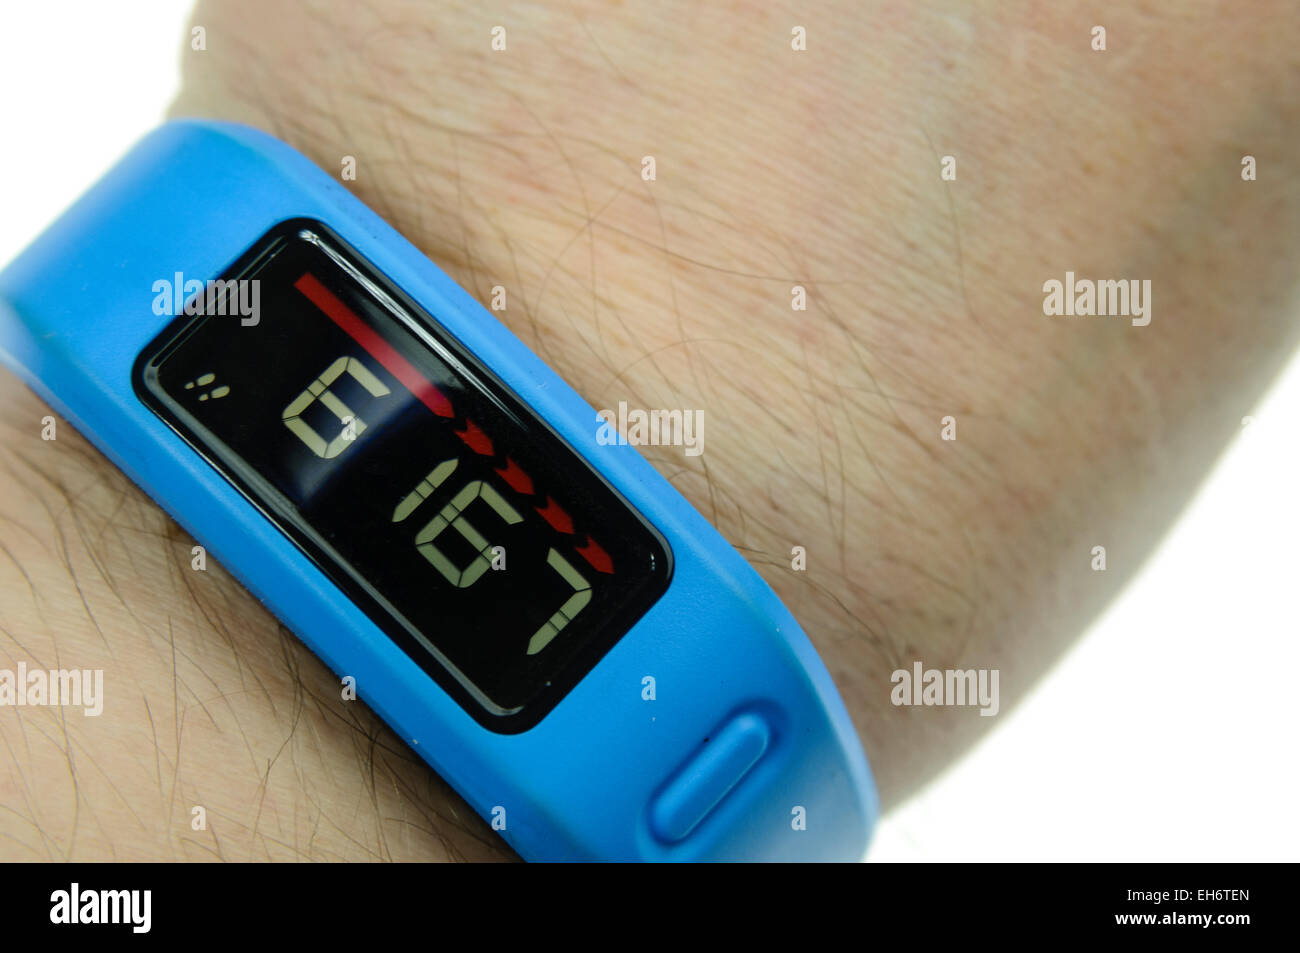 A man checks his daily number of steps on a a Garmin Vivofit fitness band on his wrist - Stock Image